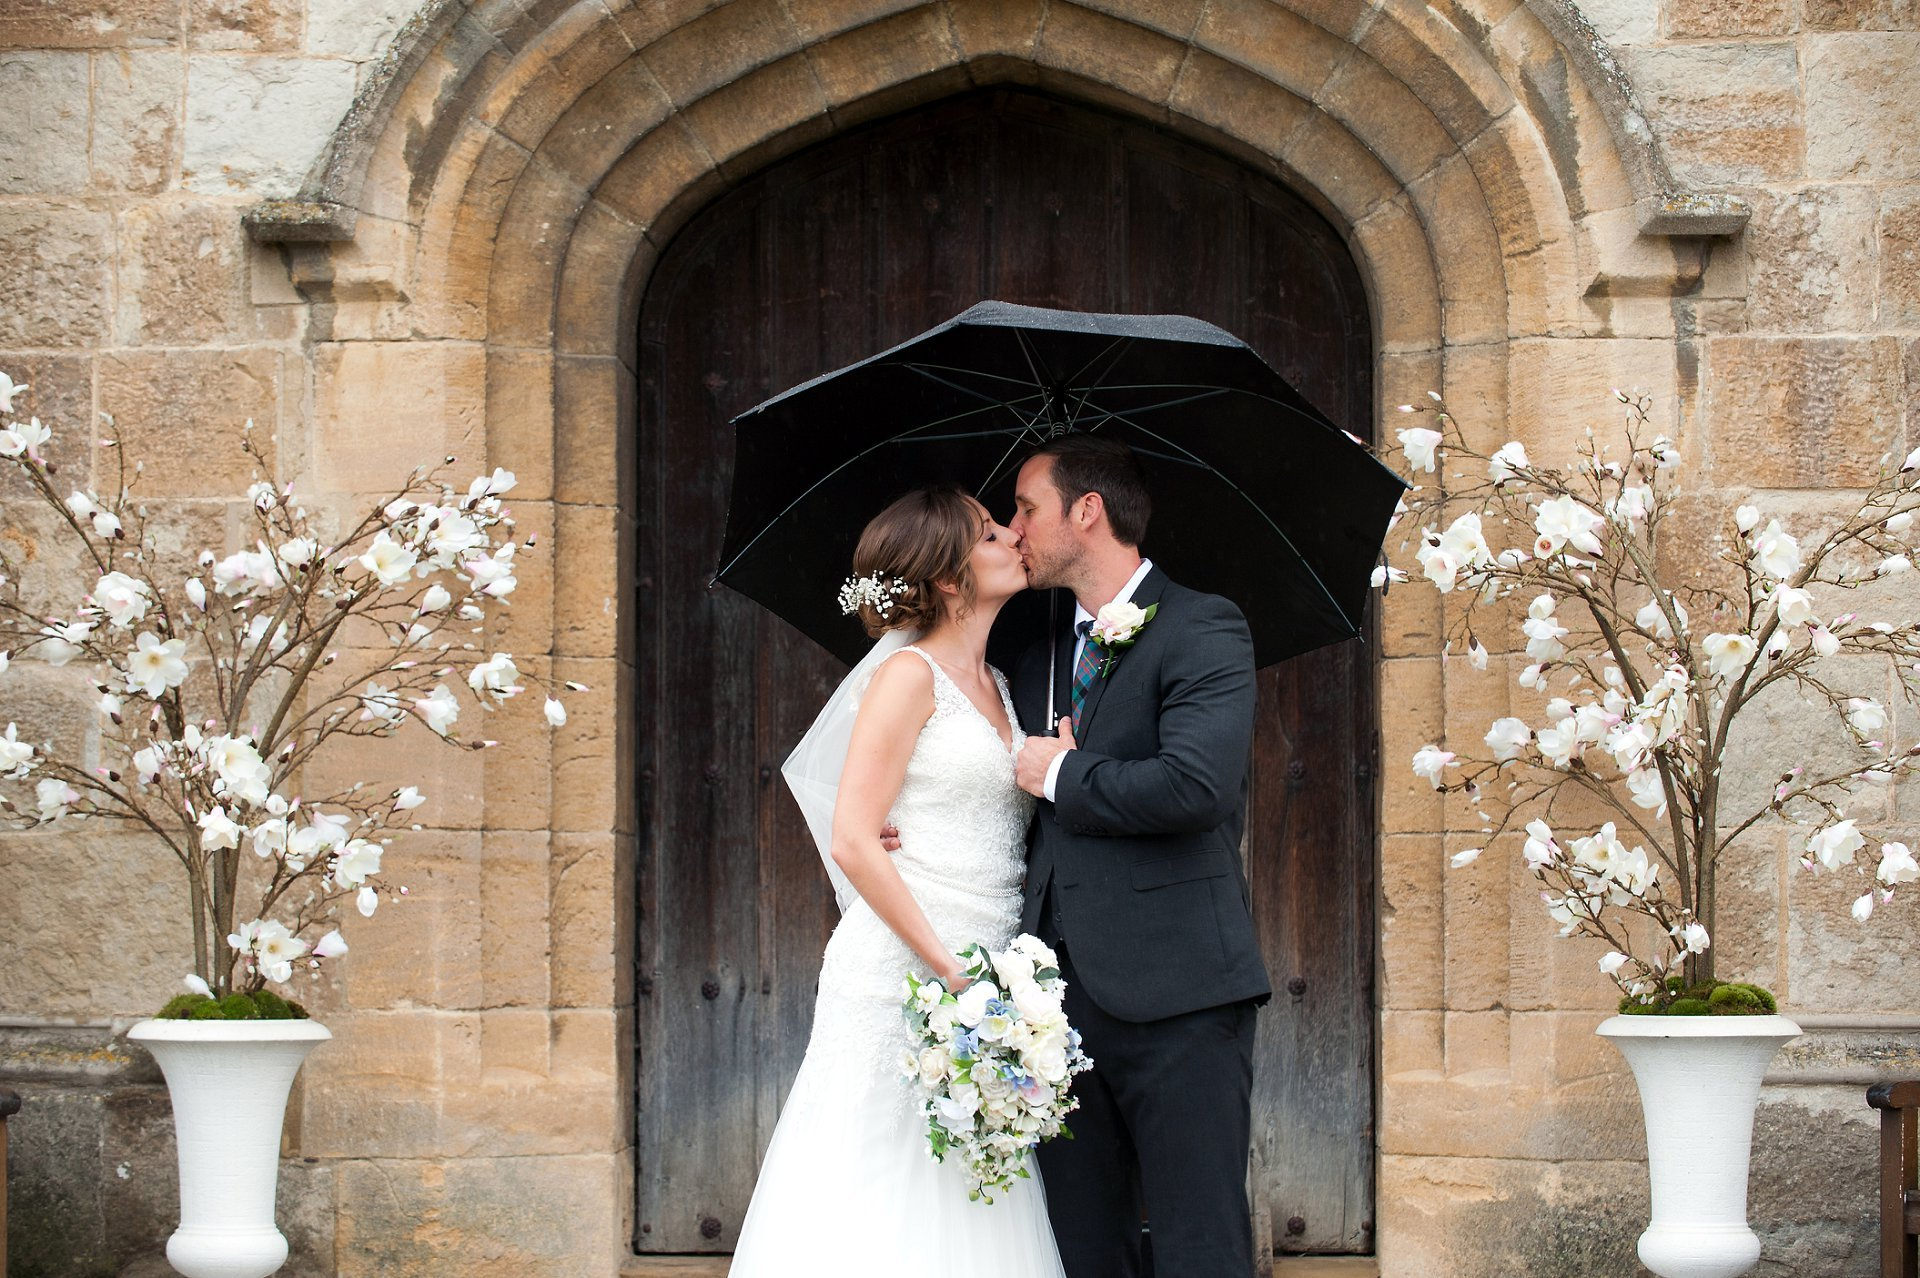 Leeds Castle wedding photography with the bride and groom kissing in front of the Leeds Castle doors with magnolia trees positioned either side of this very romantic scene